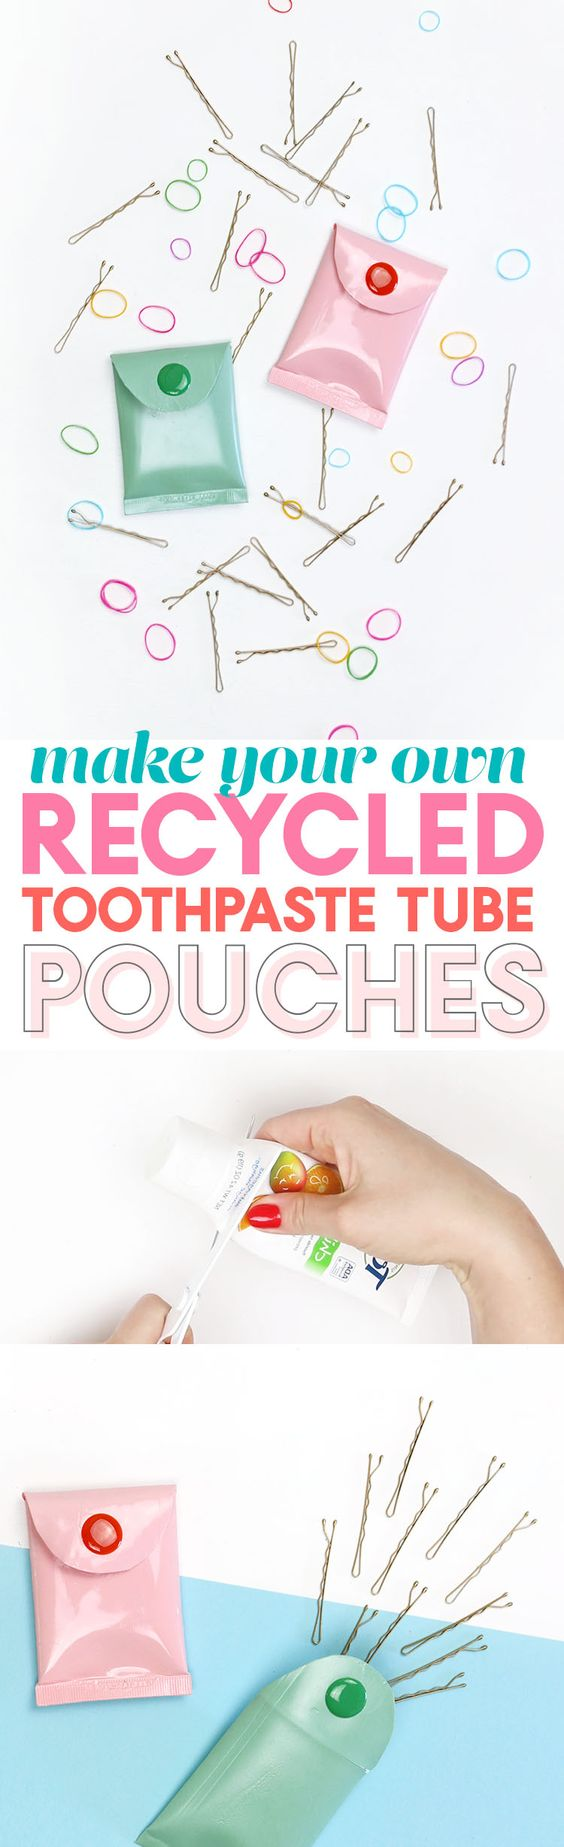 Reusing toothpaste tube